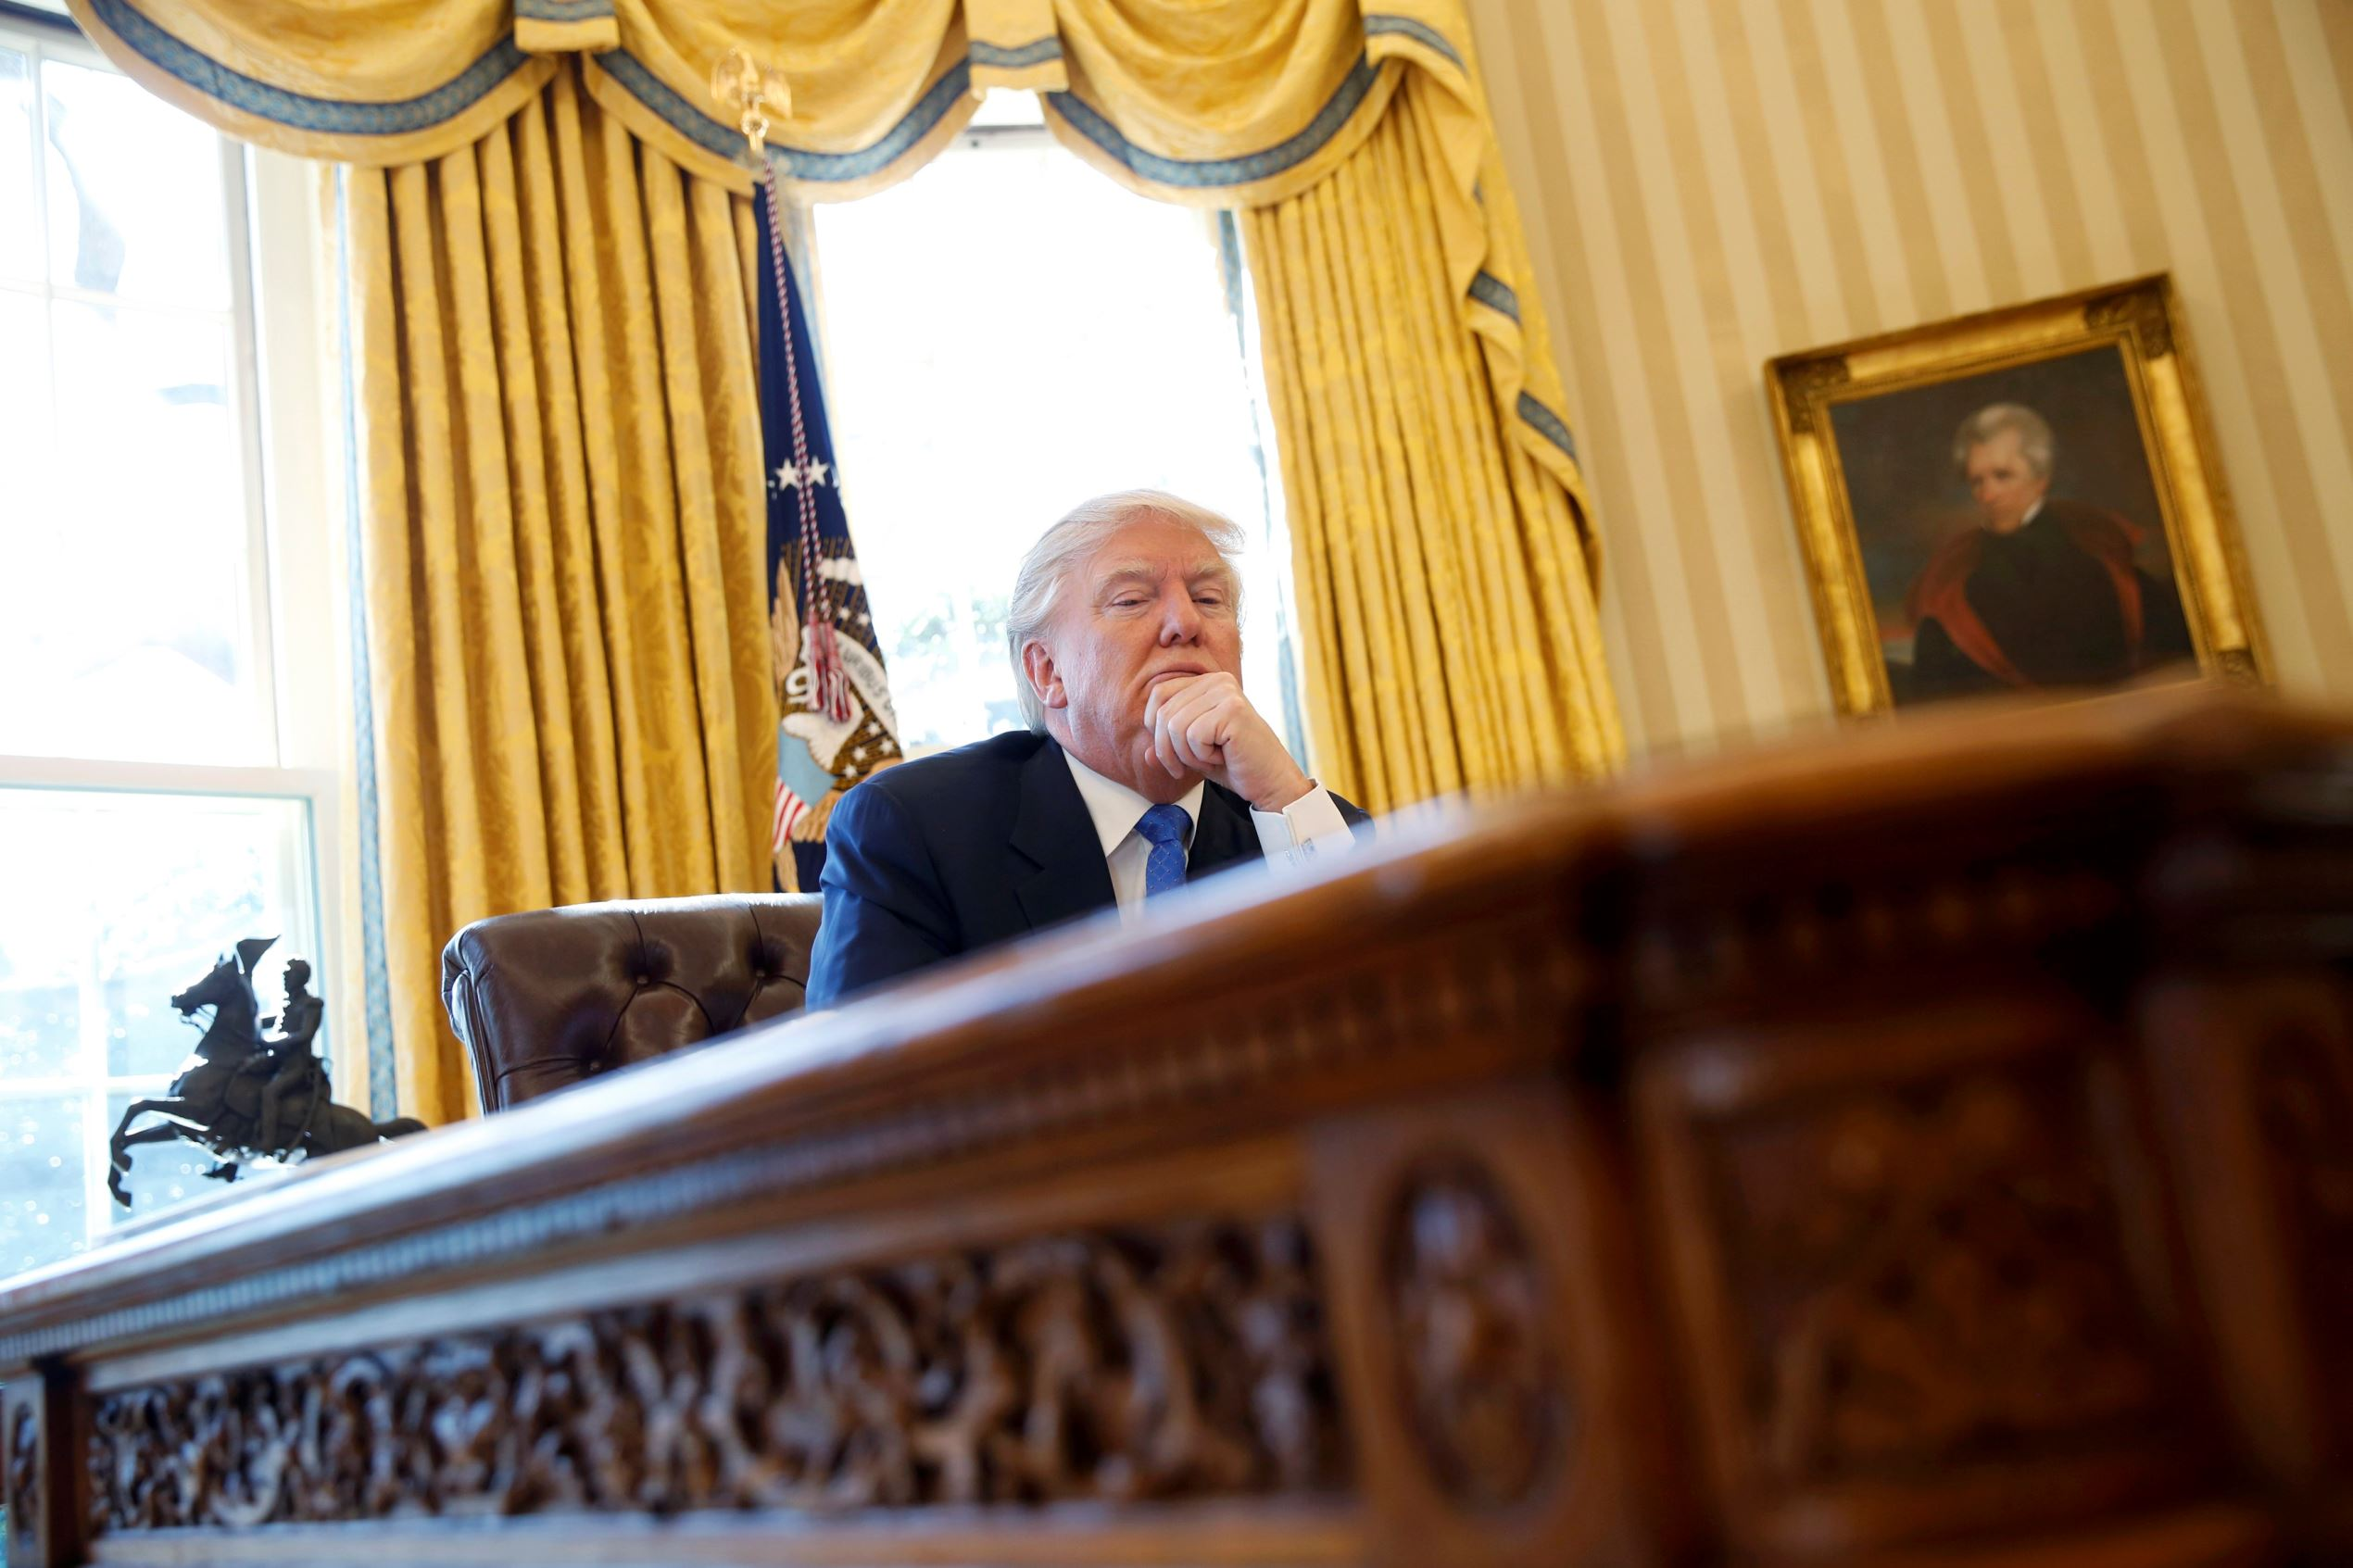 U.S. President Donald Trump pauses during an an interview in the Oval Office at the White House in Washington, U.S., February 23, 2017.